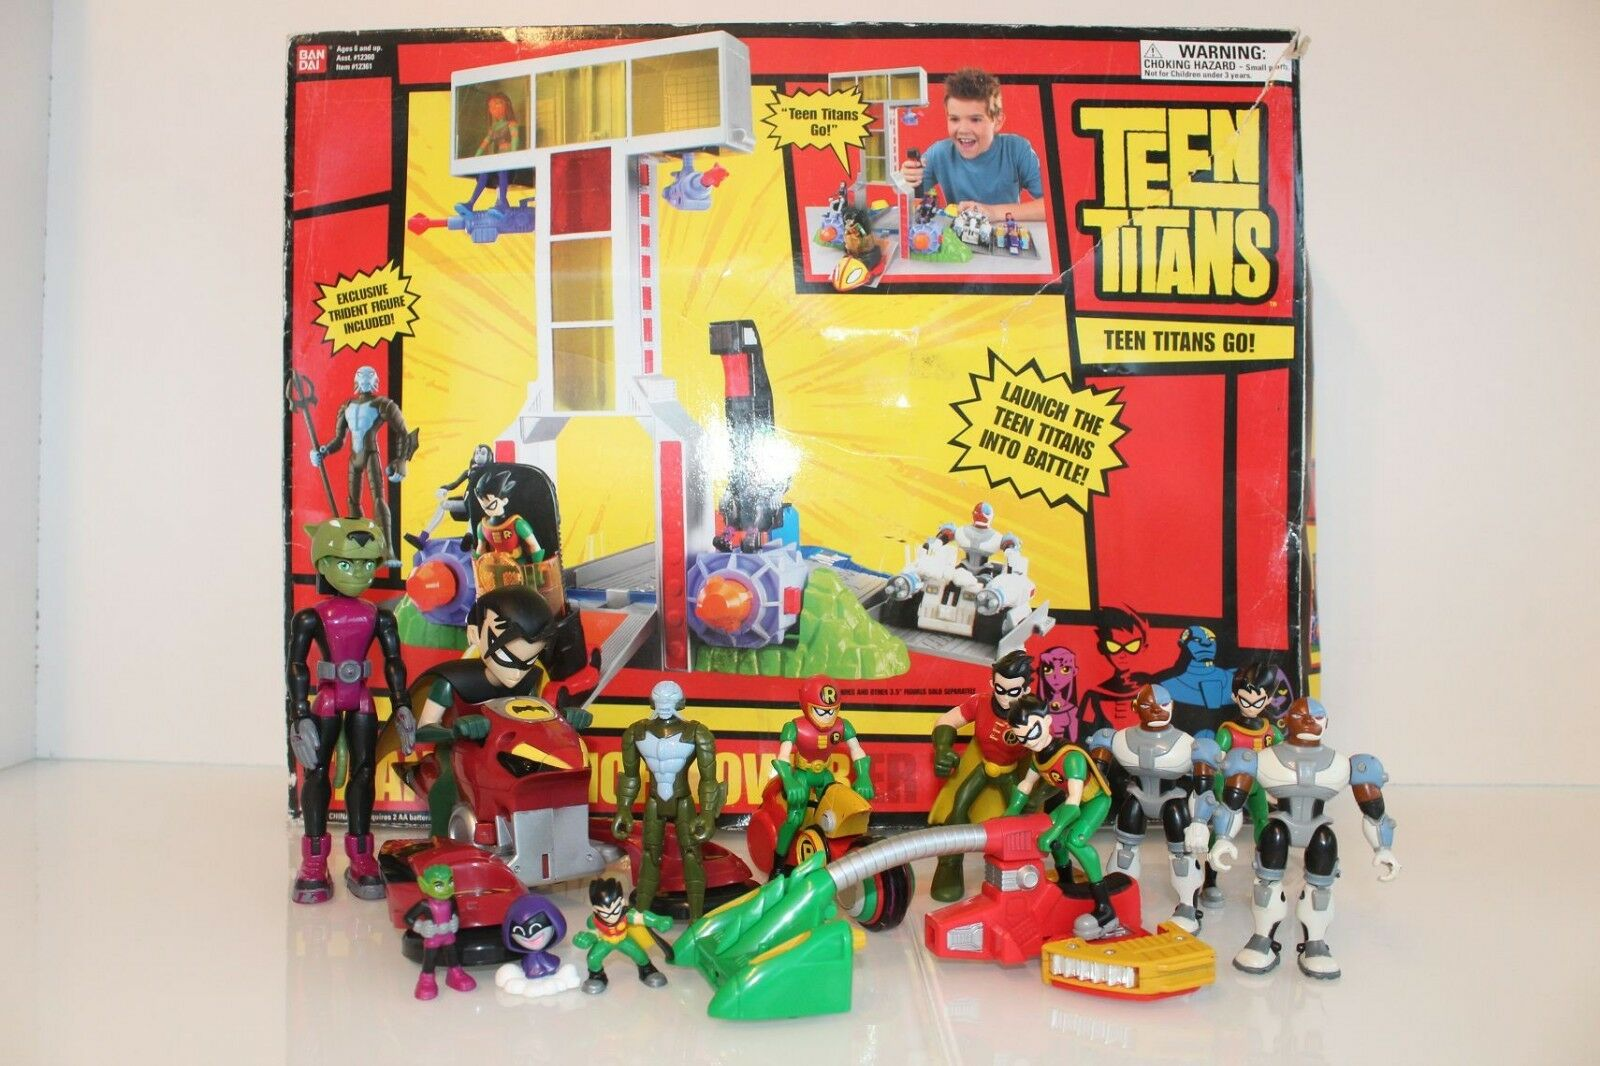 FIGURINES FIGURES BOXED DC TEEN TITANS LOT VINTAGE BANDAI NO POPY MARVEL MATTEL